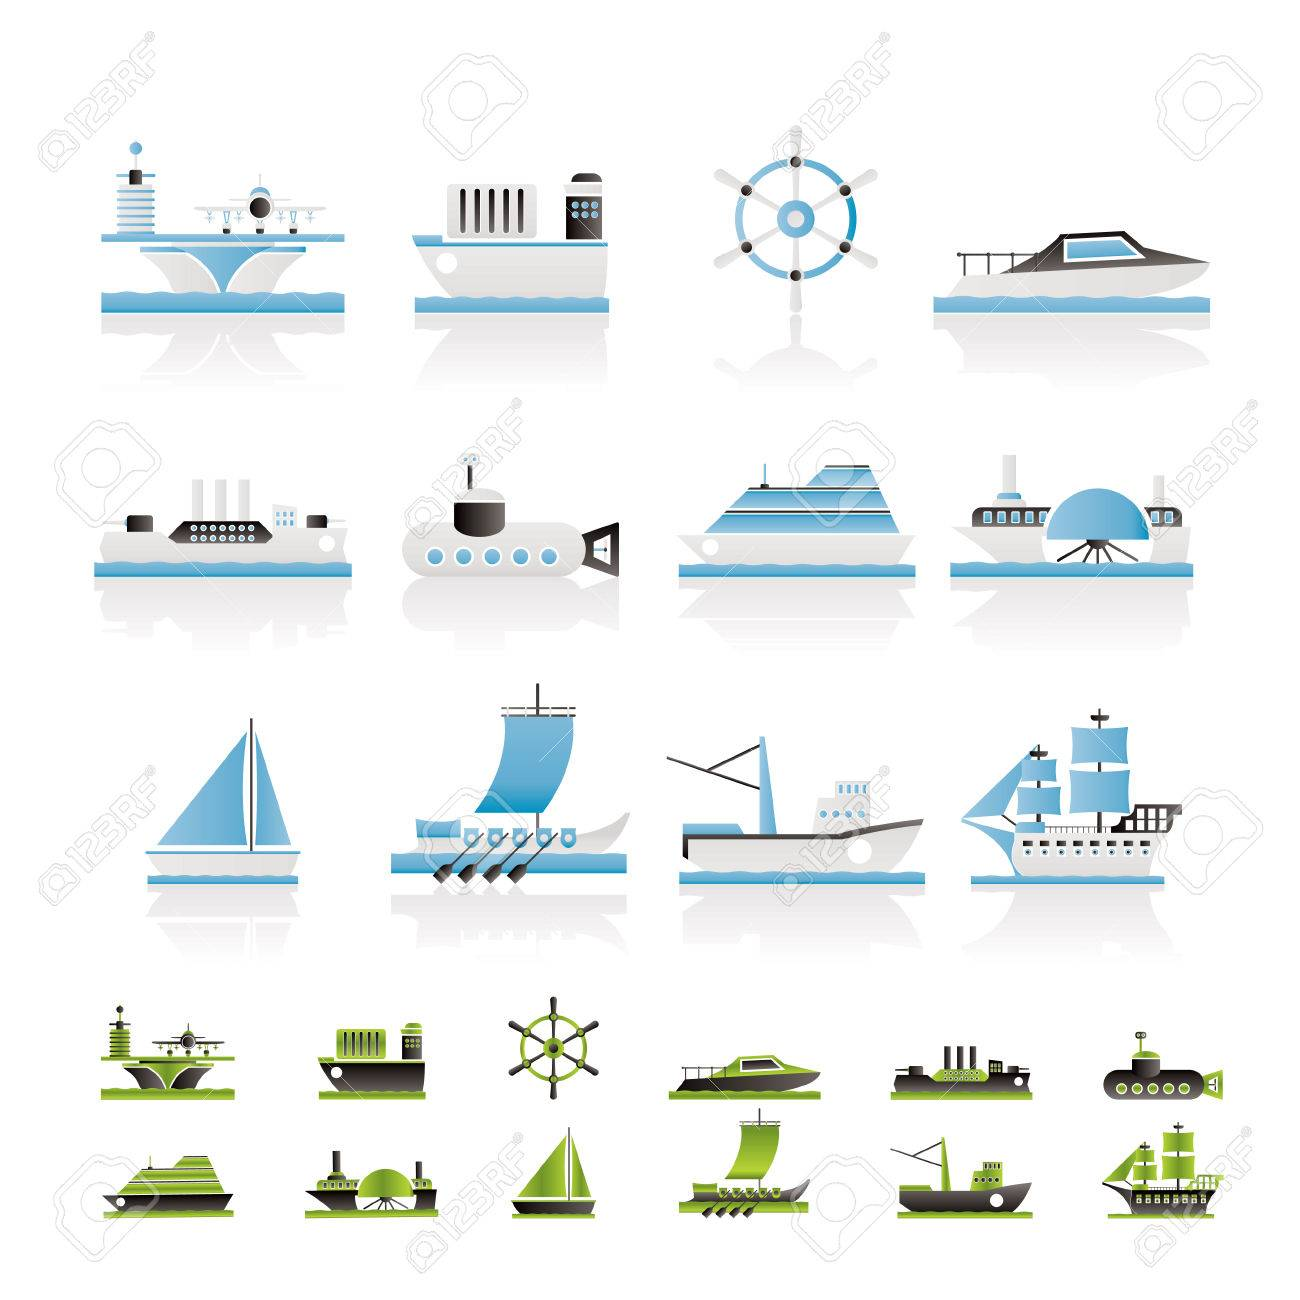 Different Types Of Boat And Ship Icons - Icon Set Royalty Free ...